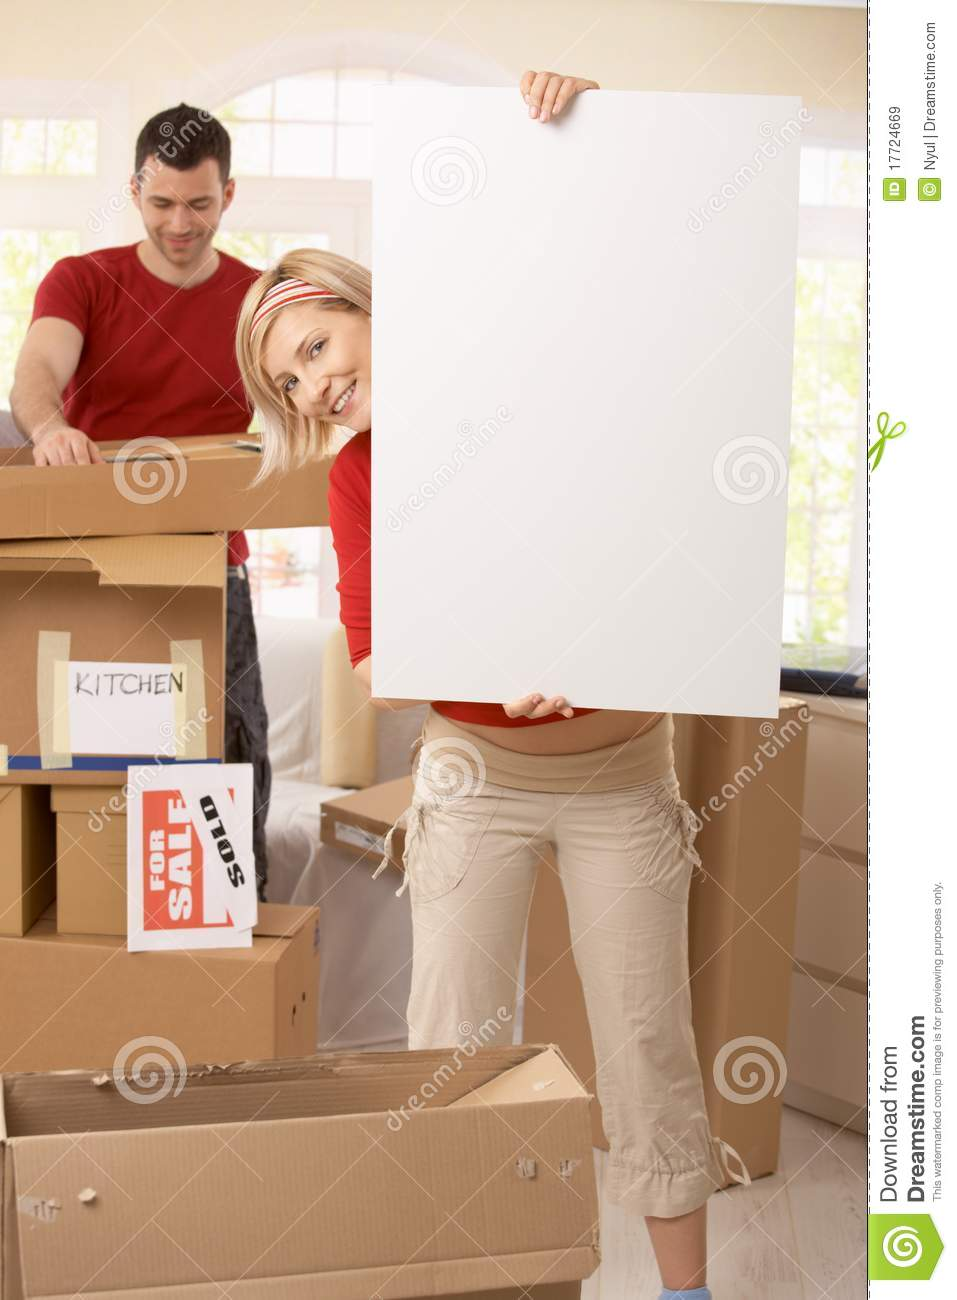 Happy couple moving into new place royalty free stock for Moving items into place